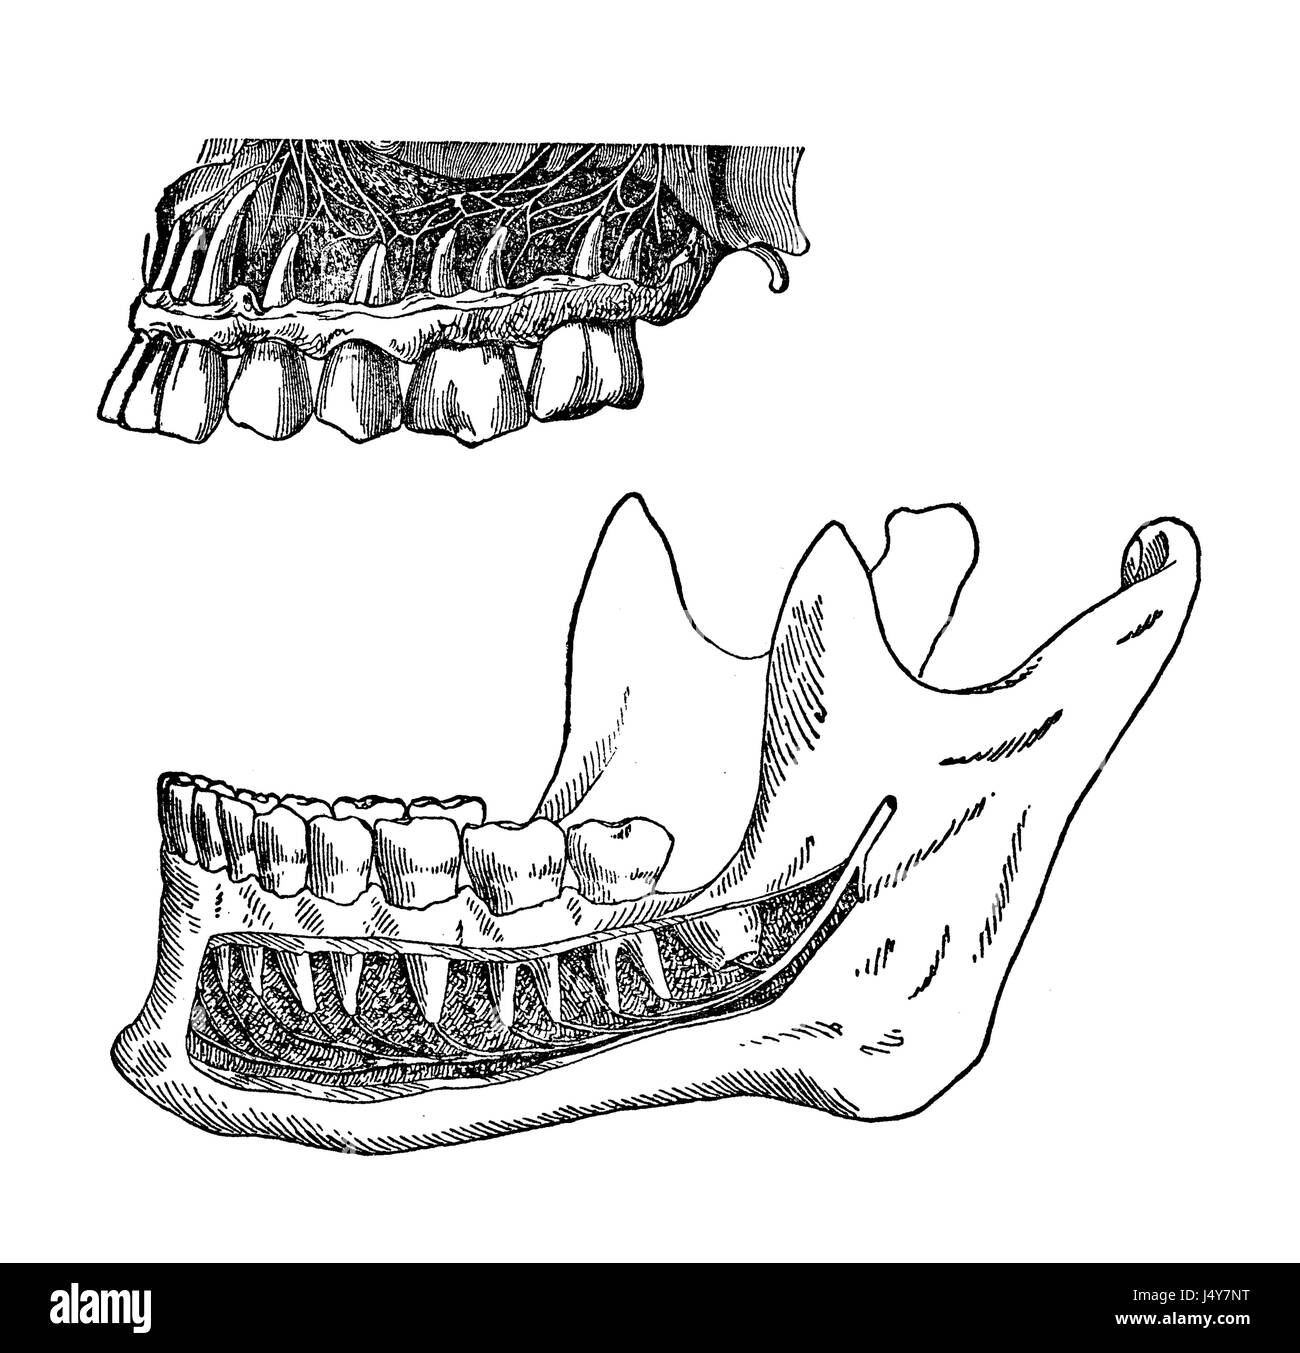 hight resolution of vintage illustration position of human teeth in the jaws stock image